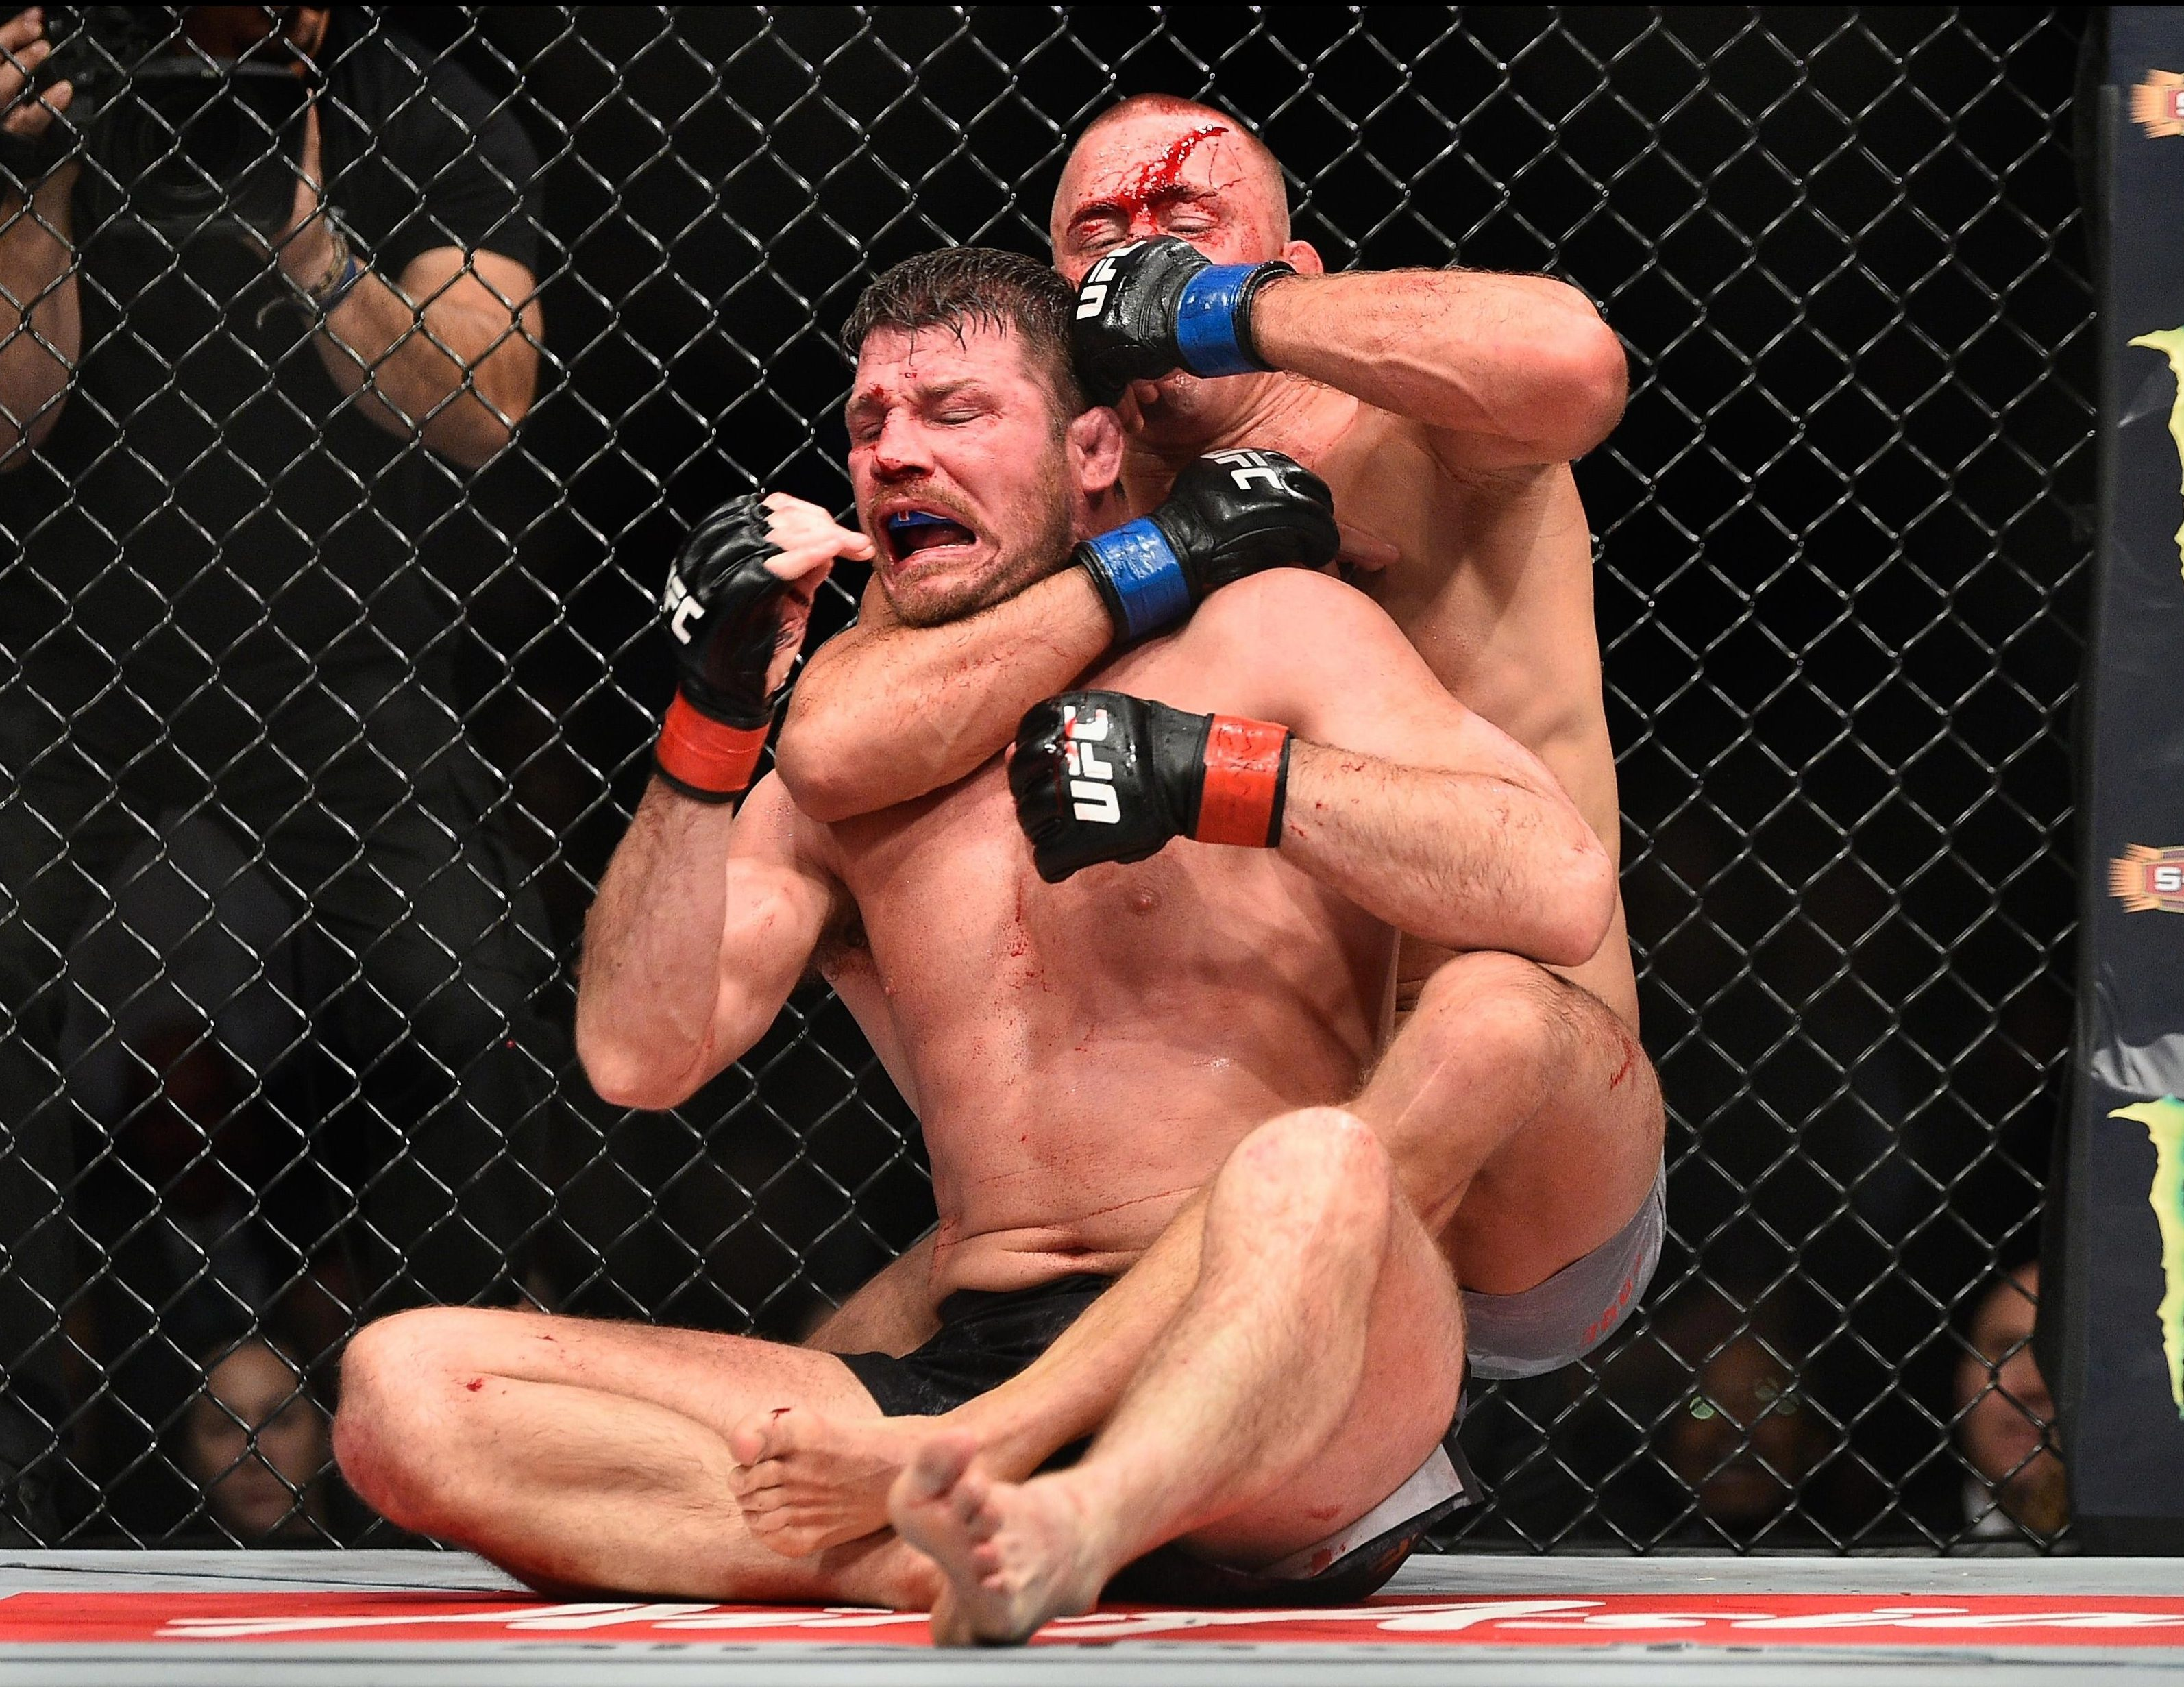 Georges St-Pierre has not fought since beating Michael Bisping last November